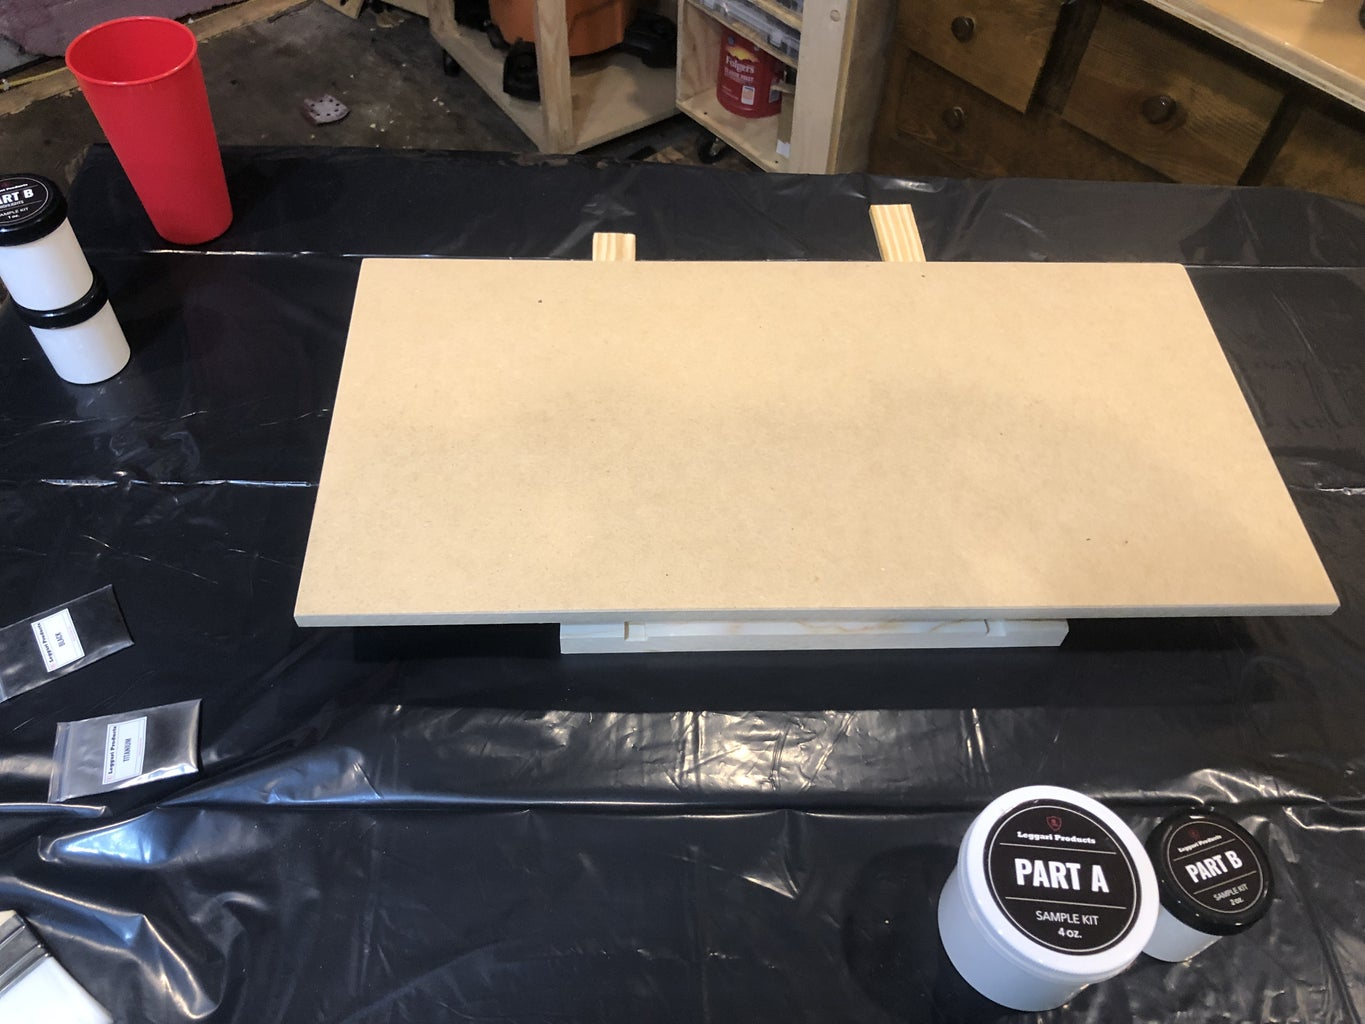 Step 1: Prep Your Board